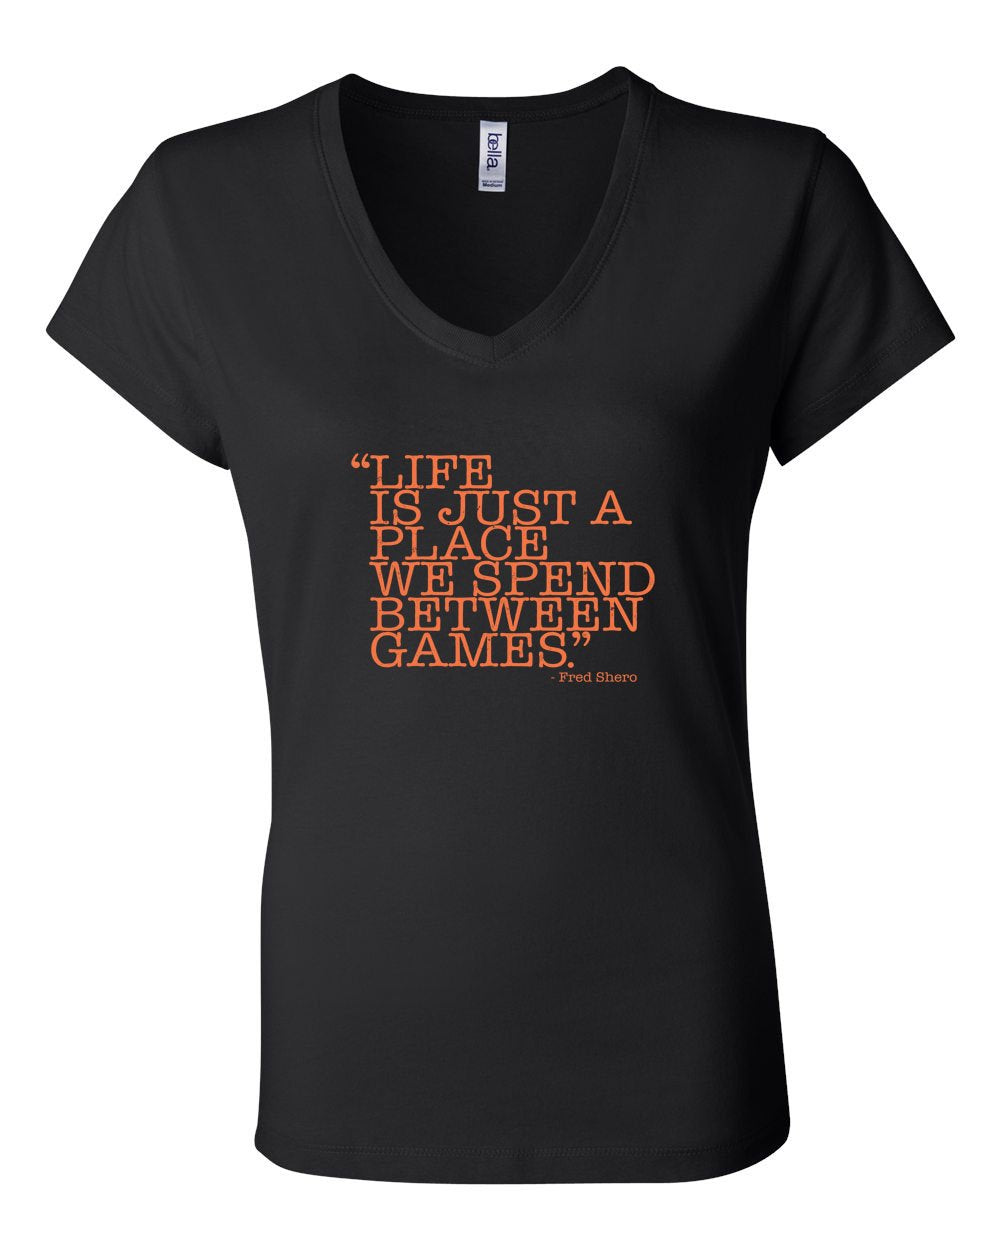 Between Games LADIES Junior Fit V-Neck